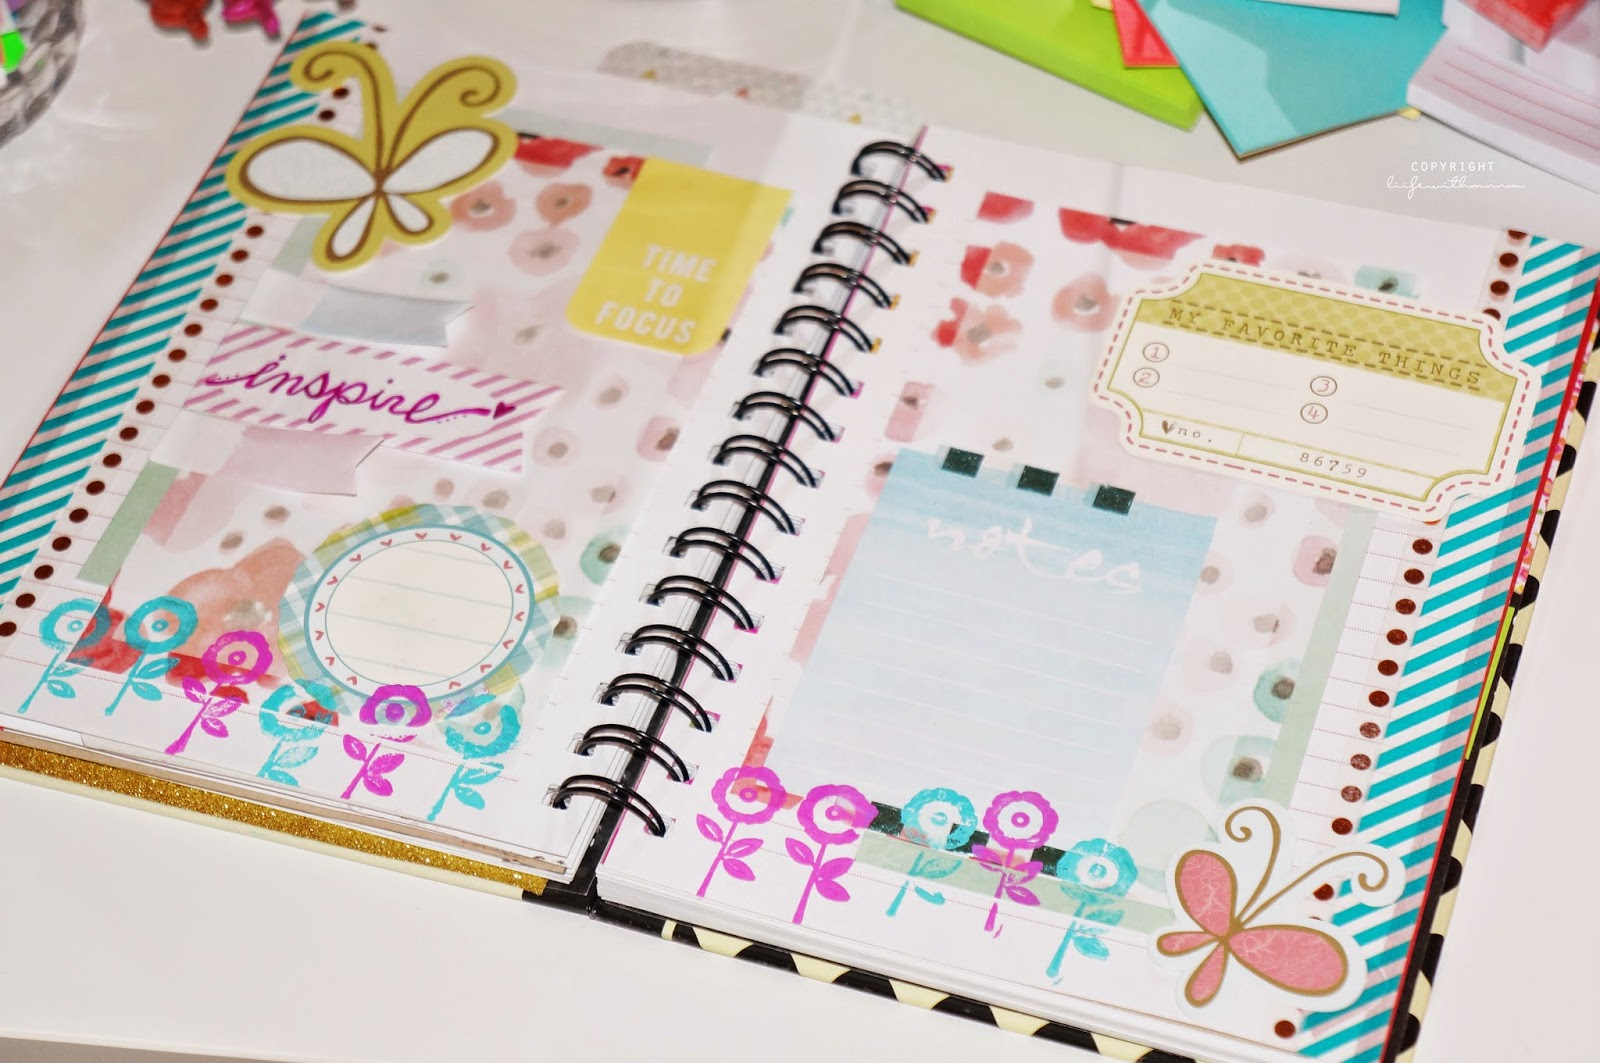 liifewithanna decorating your planner notebook diy planner ideas